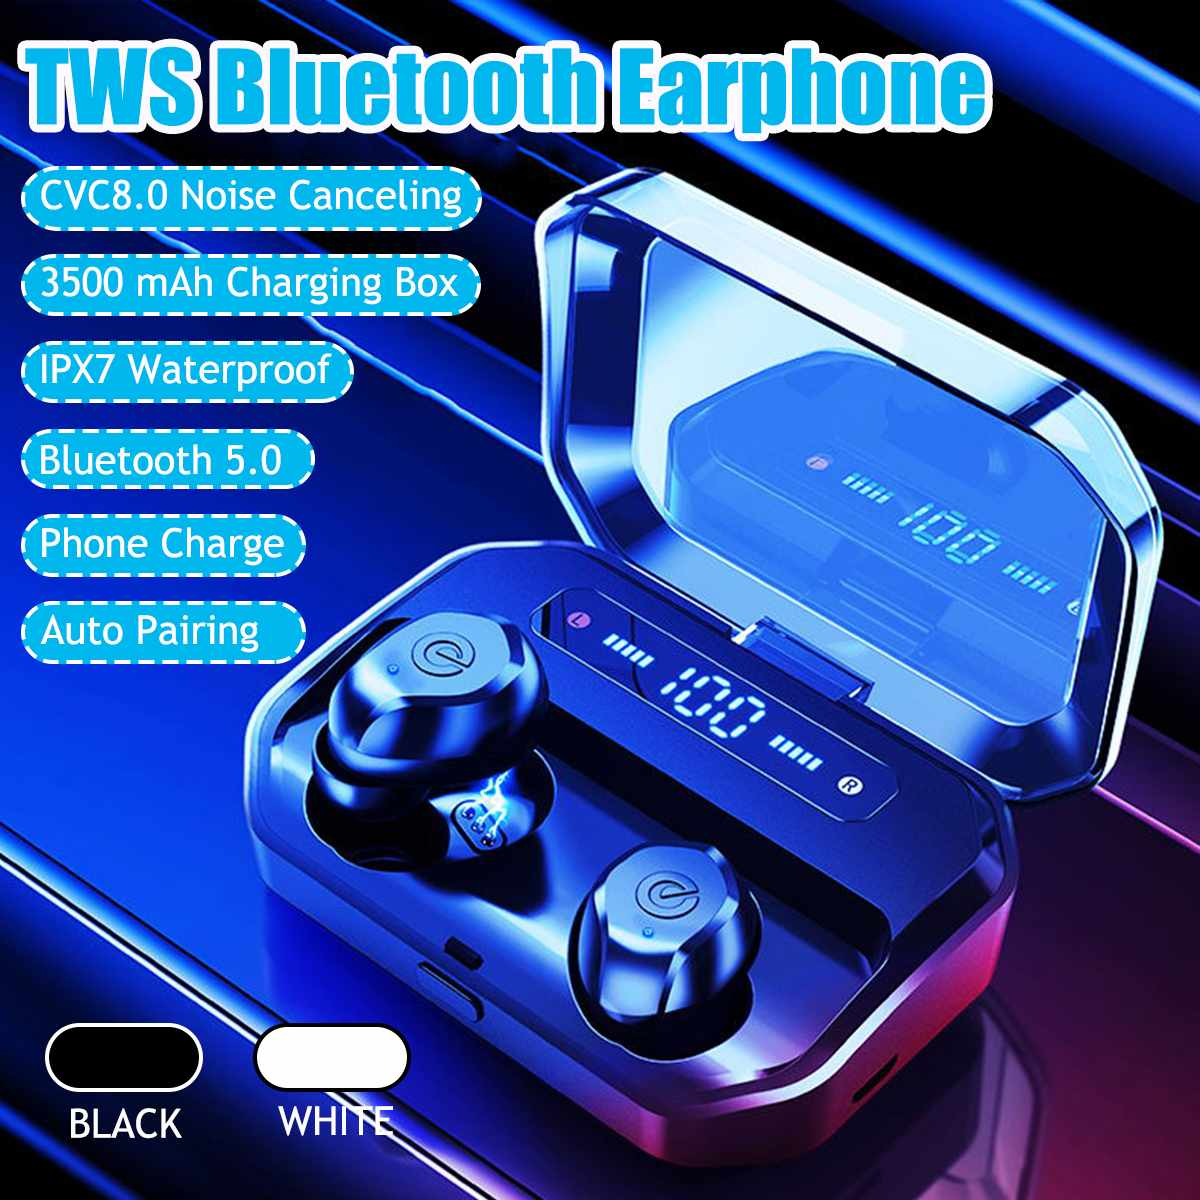 TWS CVC Wireless Stereo Headphones bluetooth 5.0 in ear Earbuds HIFI Sound with 3500 mAh Powerbank charging Box For IOS AndroidTWS CVC Wireless Stereo Headphones bluetooth 5.0 in ear Earbuds HIFI Sound with 3500 mAh Powerbank charging Box For IOS Android